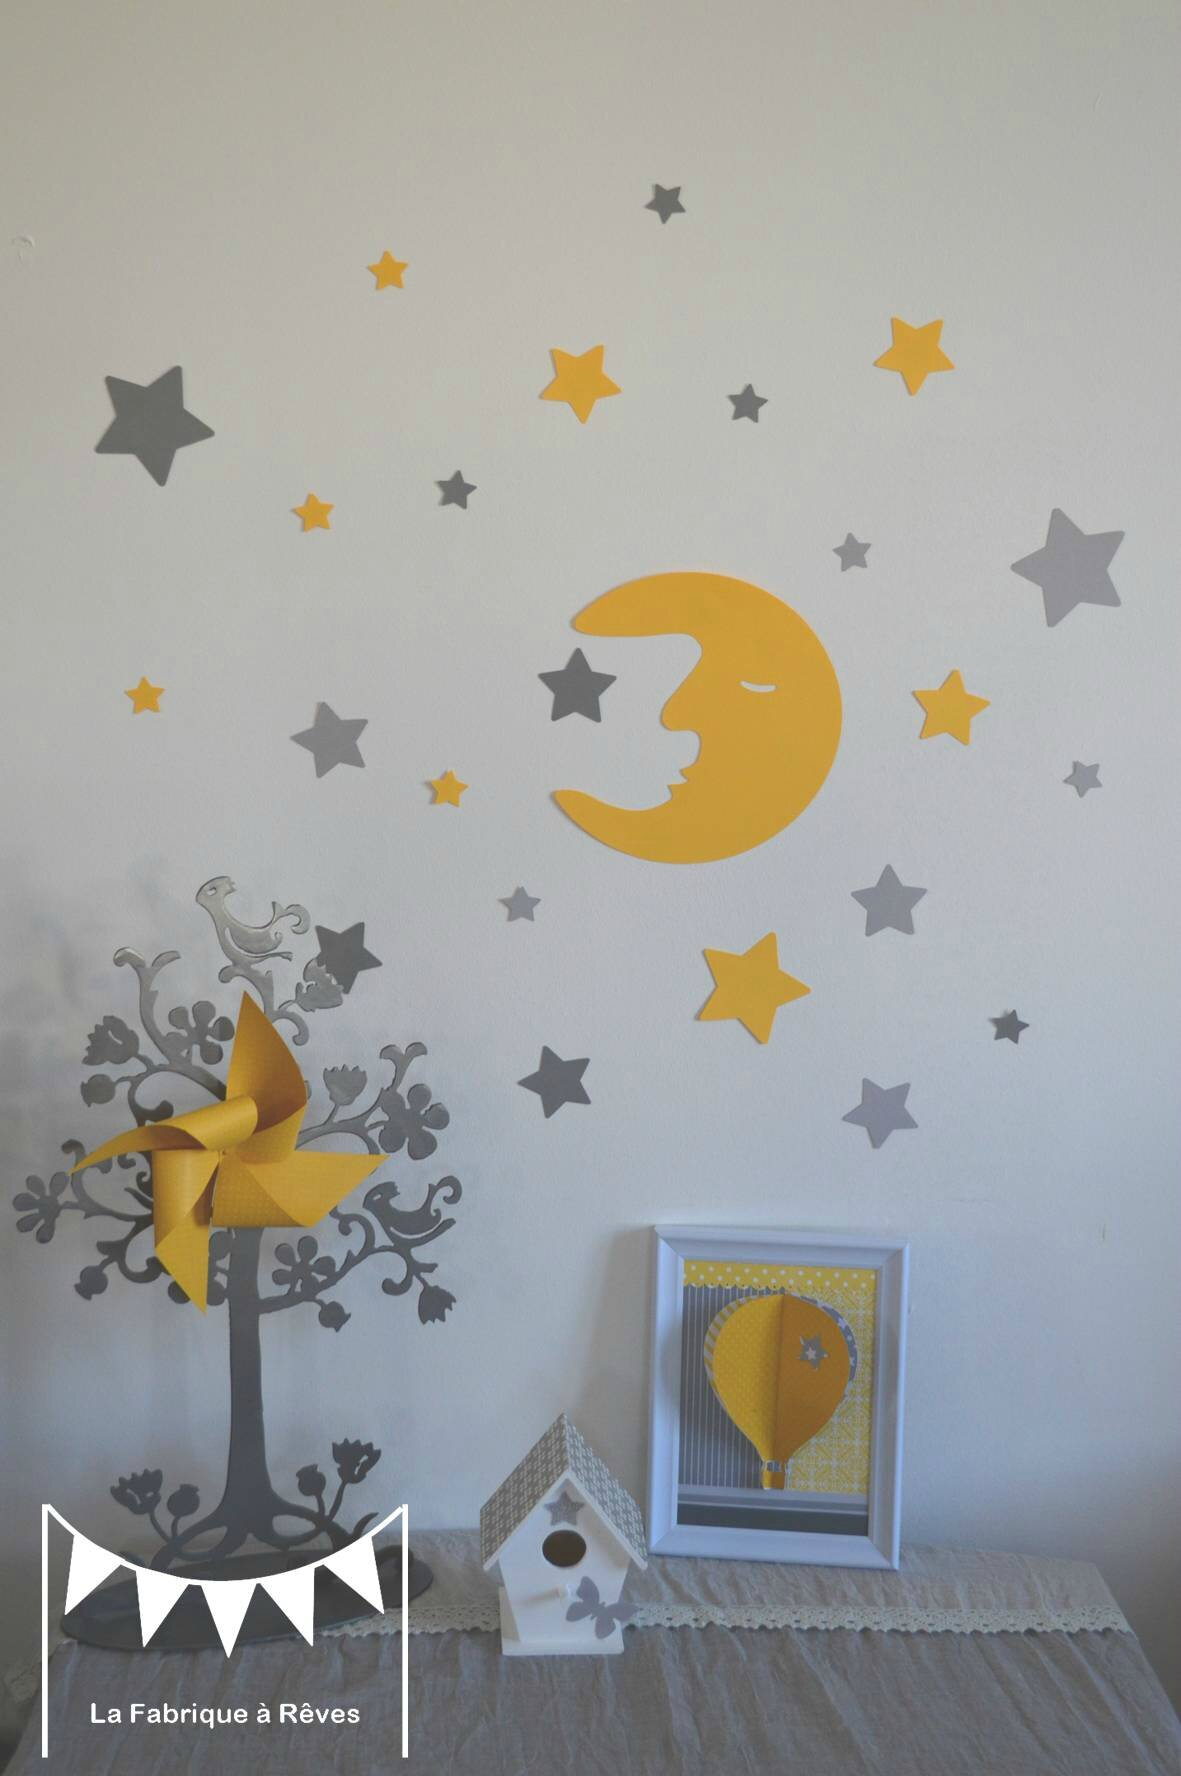 Stickers d coration chambre enfant fille b b gar on lune et toiles jaune gris photo de th me for Chambre garcon jaune et grise